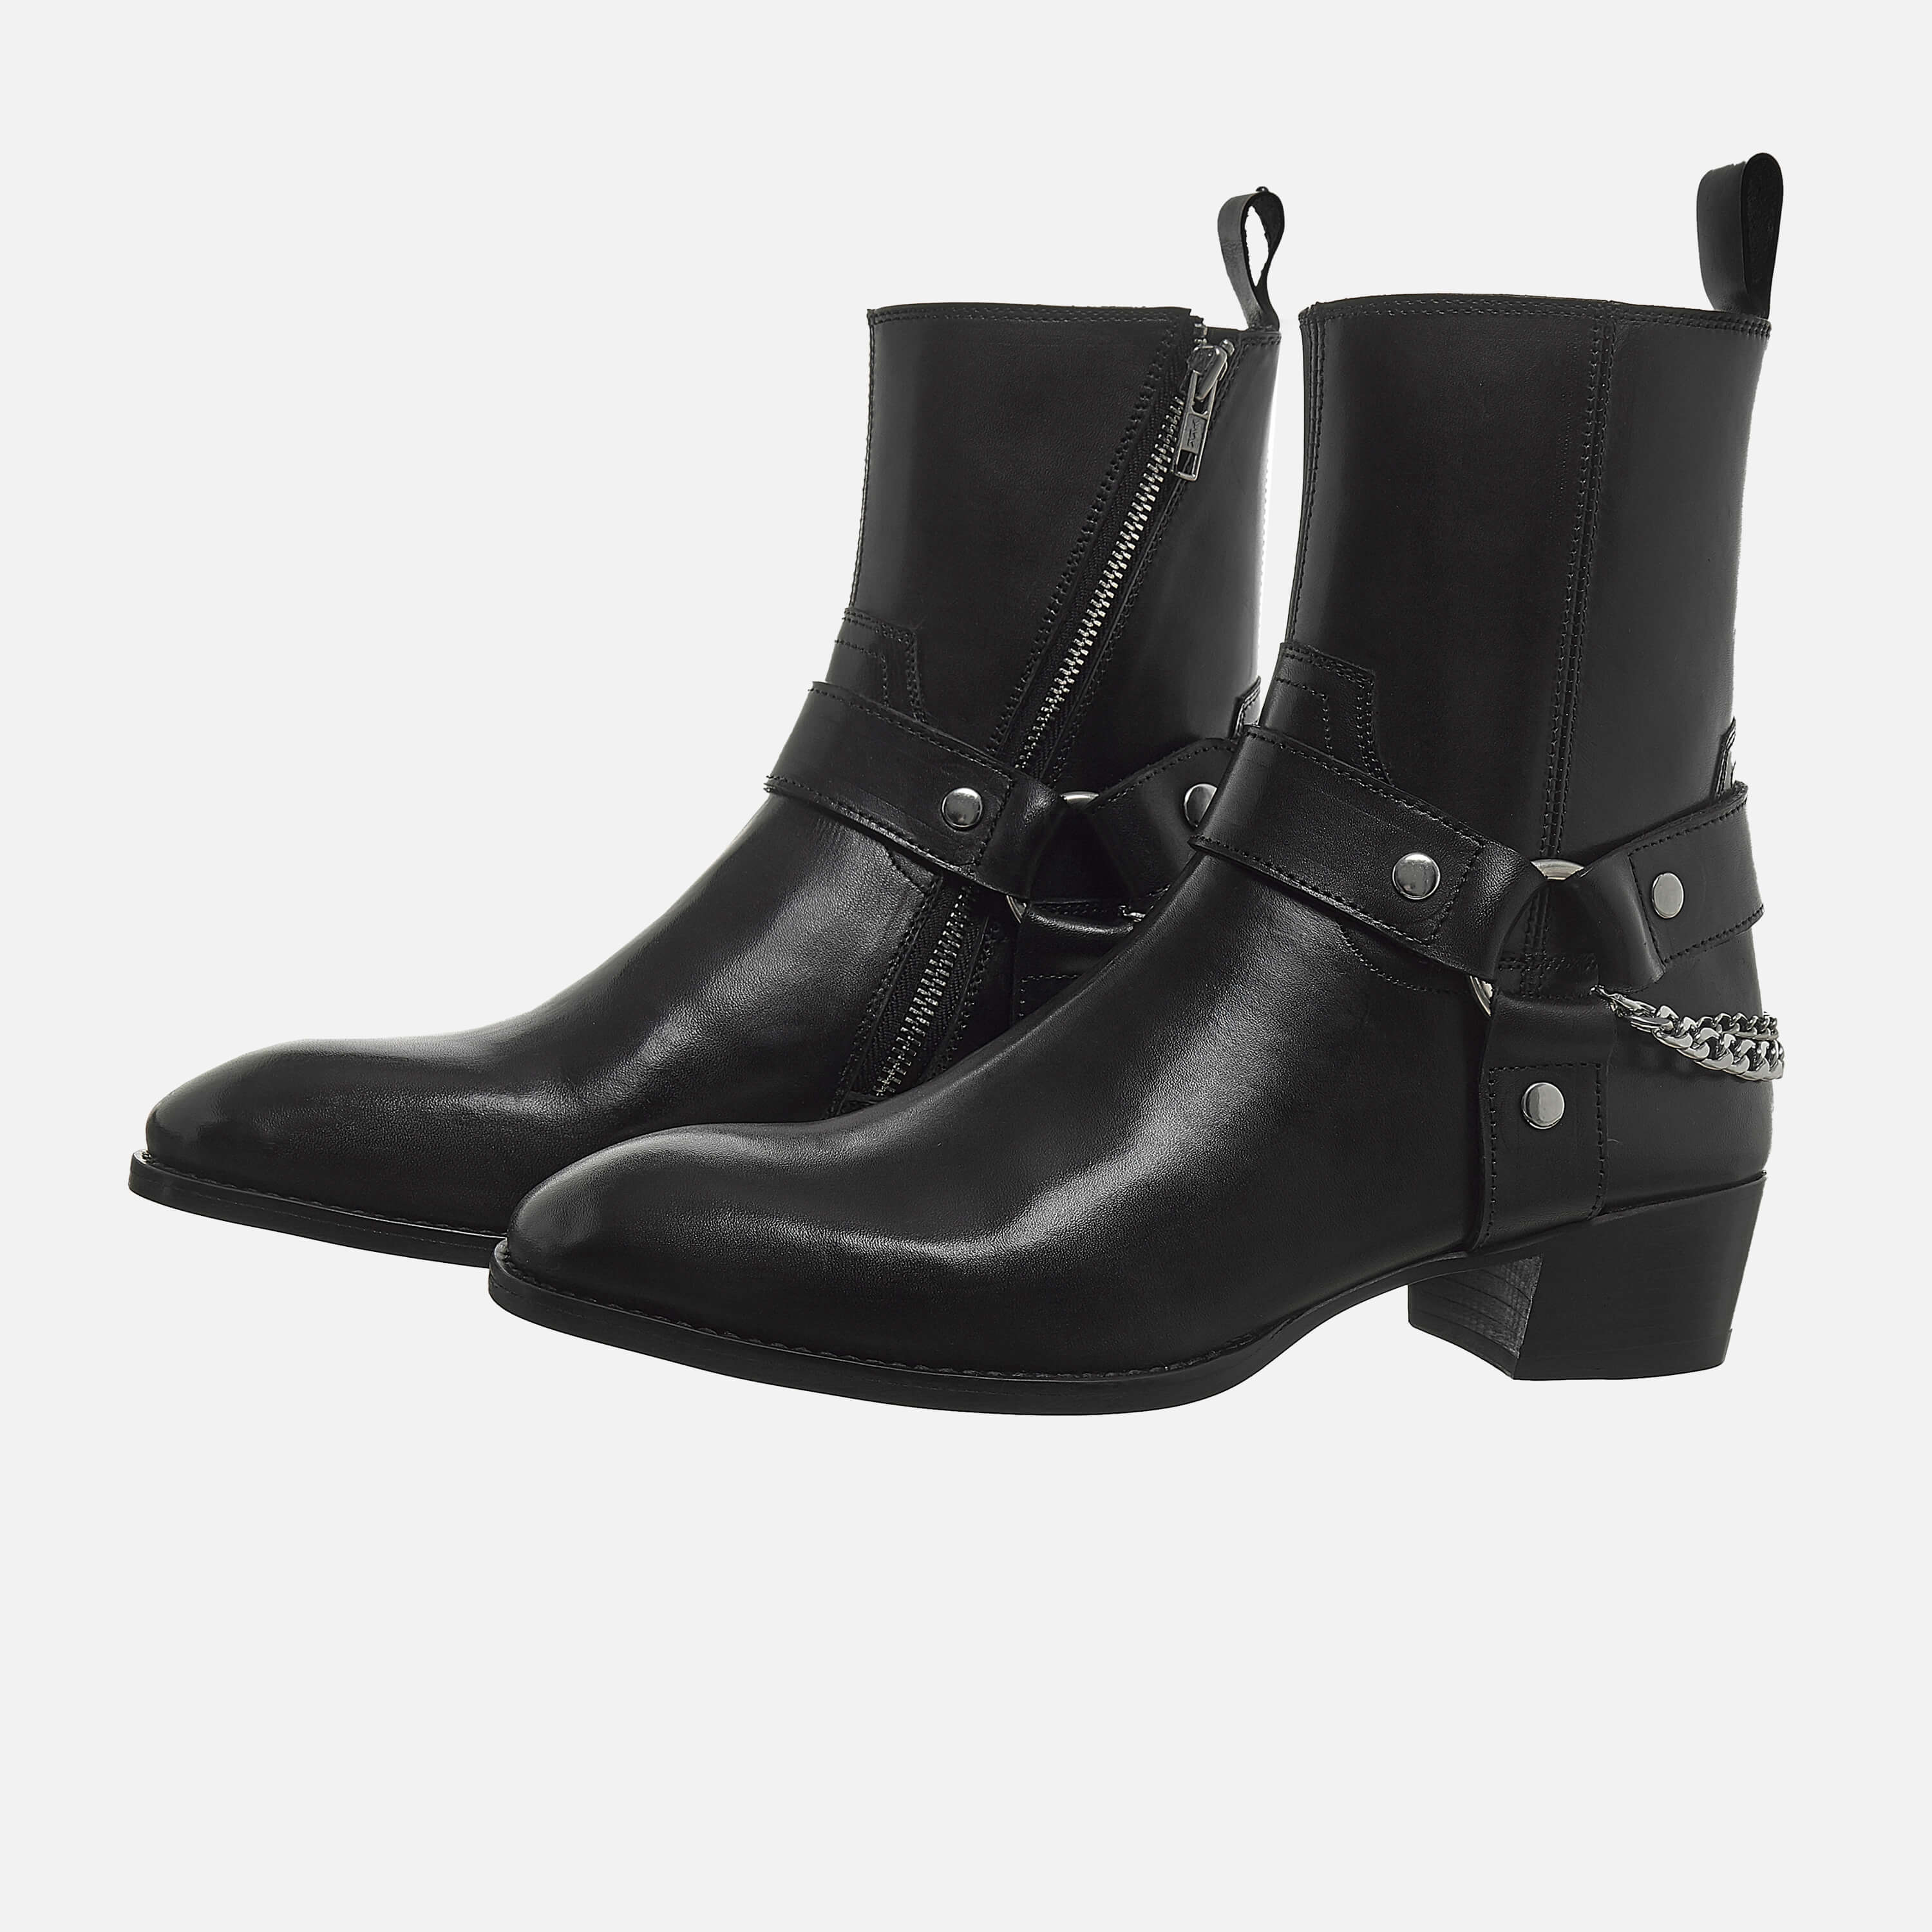 Chain x Harness Boots In Black Chain x Harness Boots In Black SS2020 7